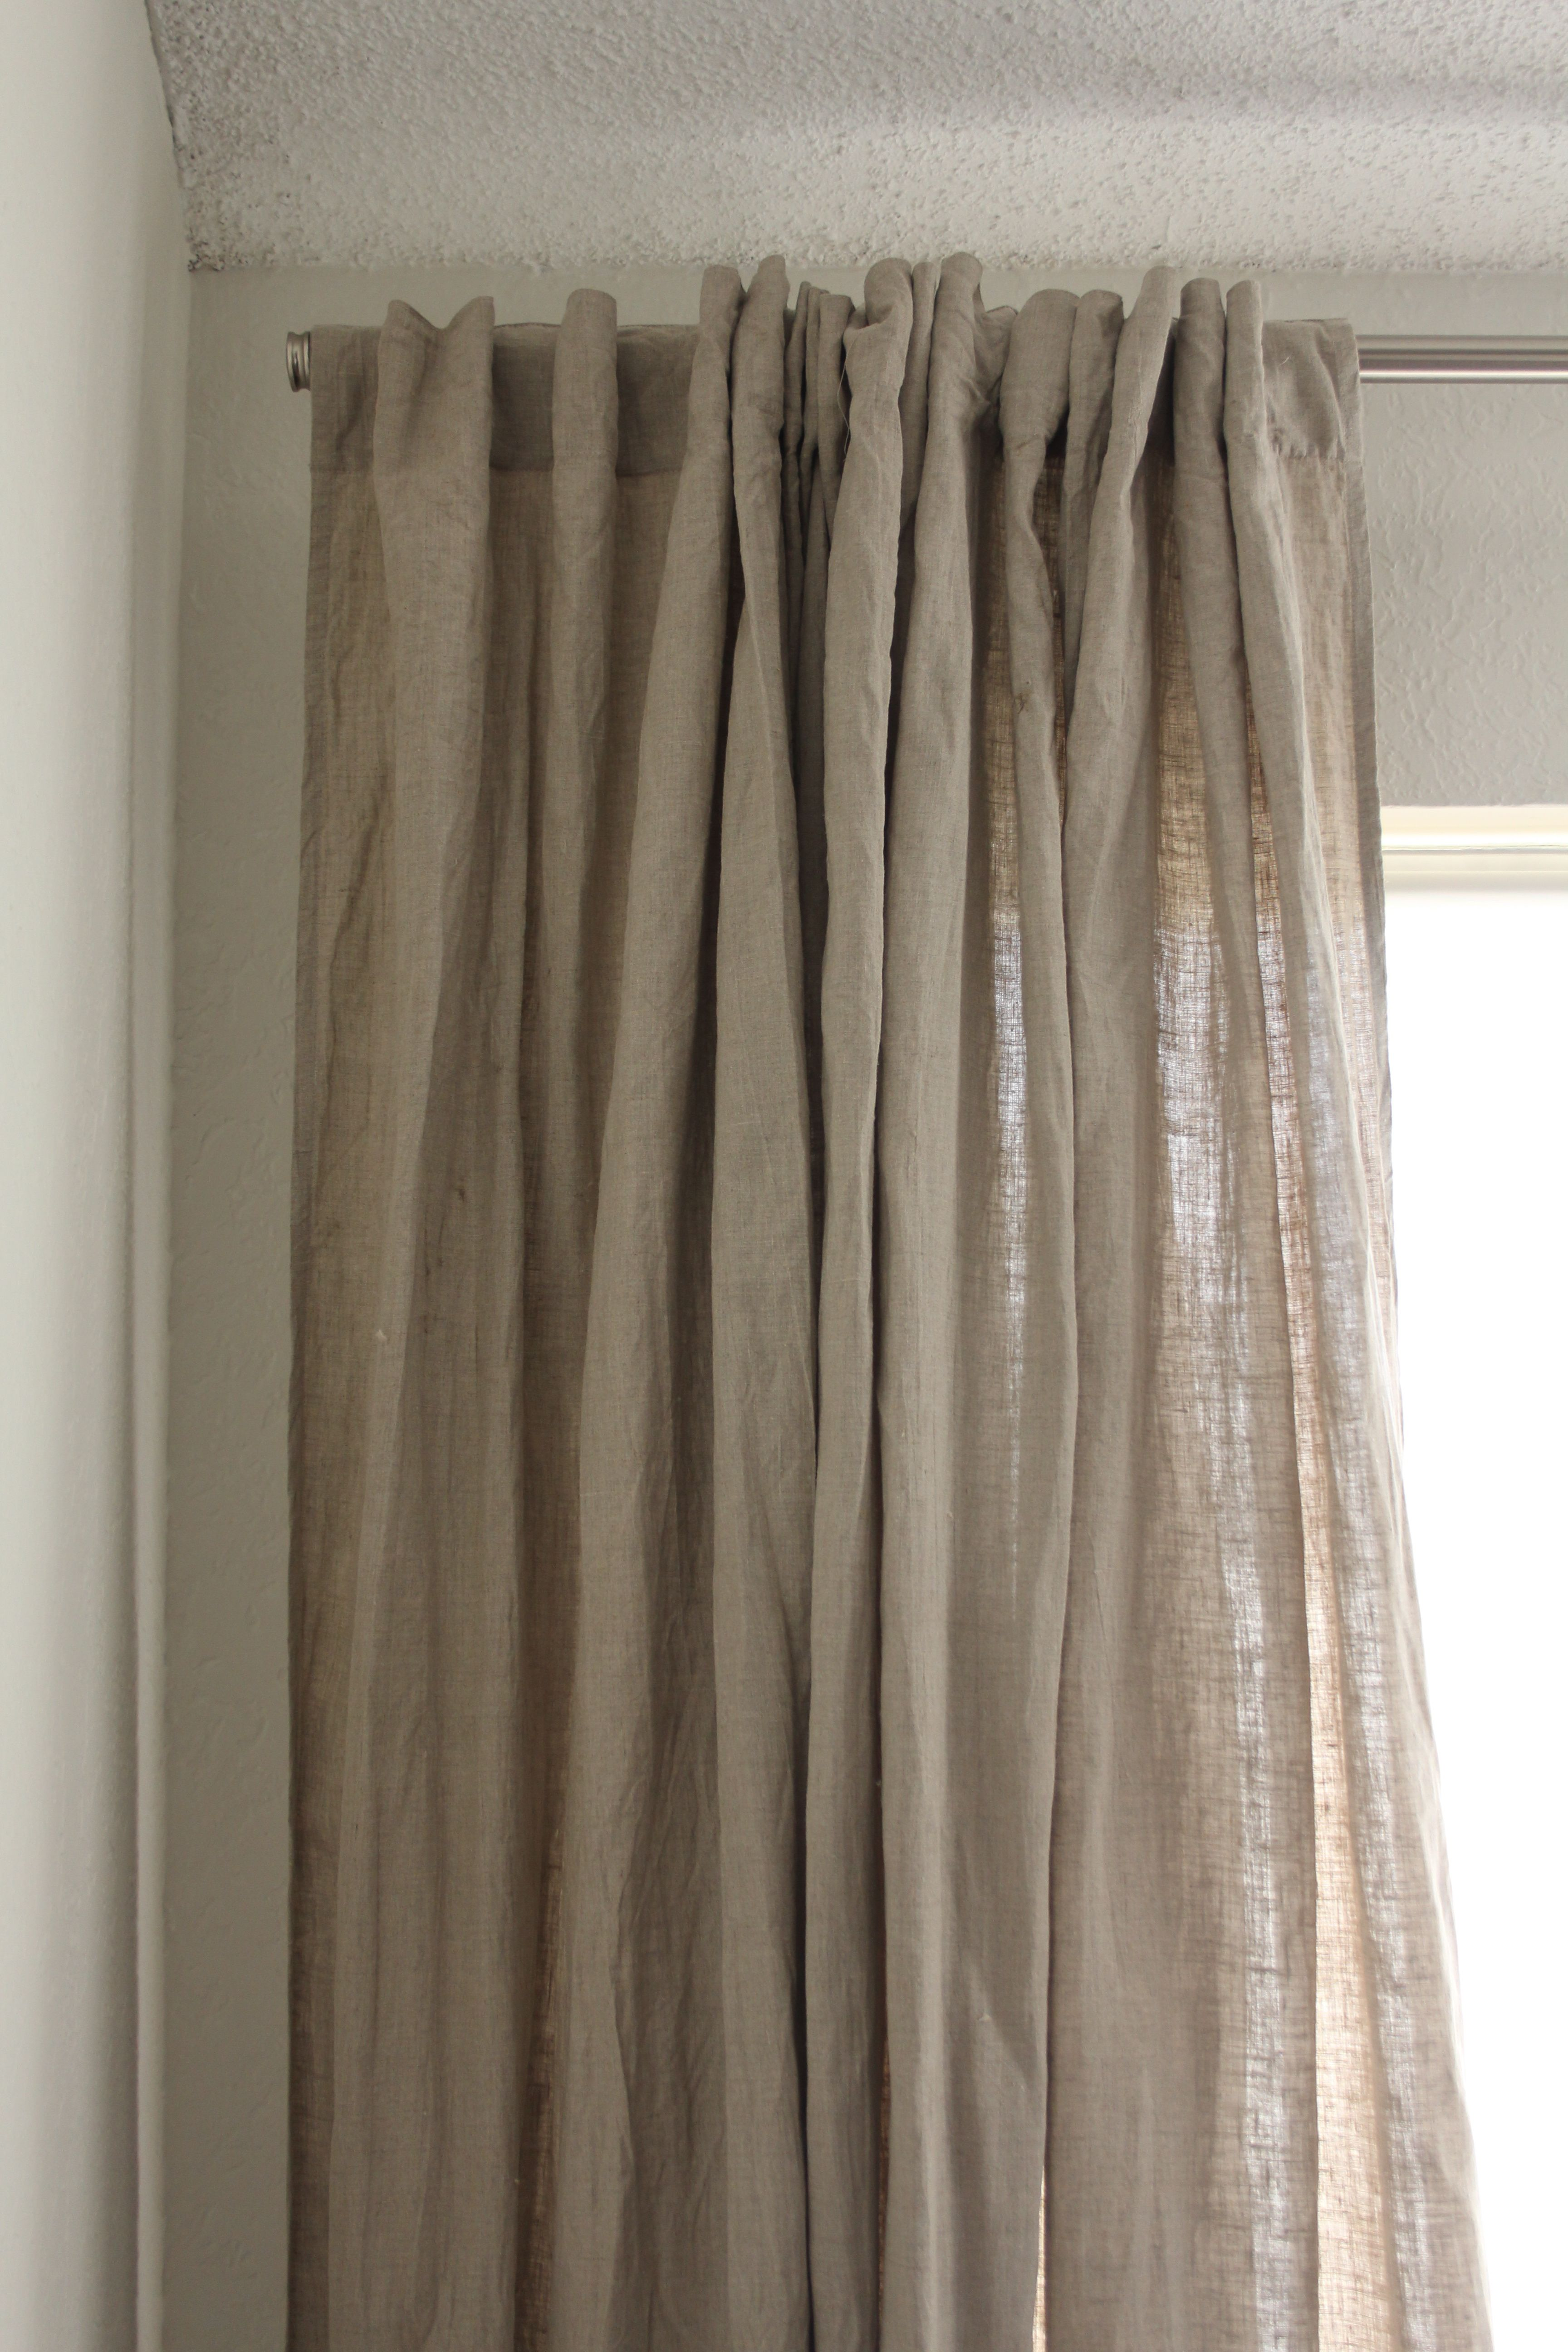 Linen Curtains Google Search Woonkamergordijnen Gordijnen Woonkamer Paneelgordijnen